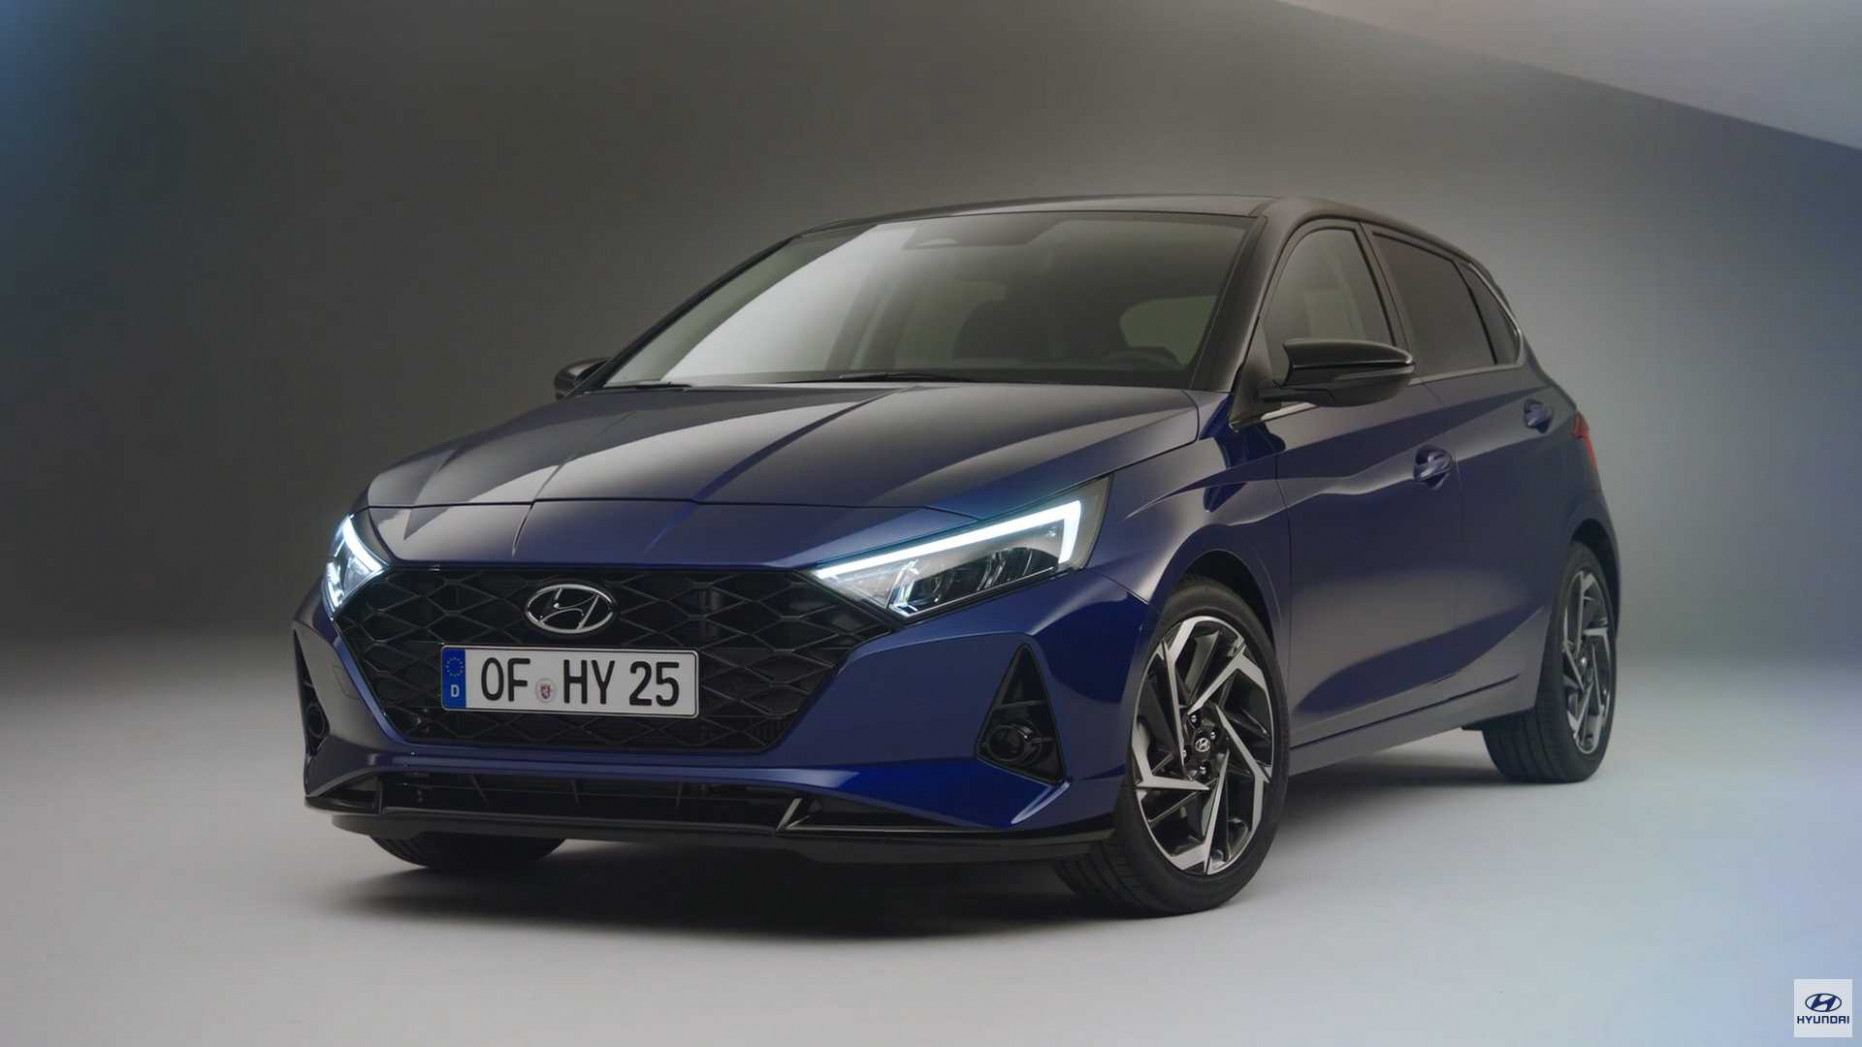 8 Hyundai i8 Debuts: New Design, Tech, And Mild Hybrid System